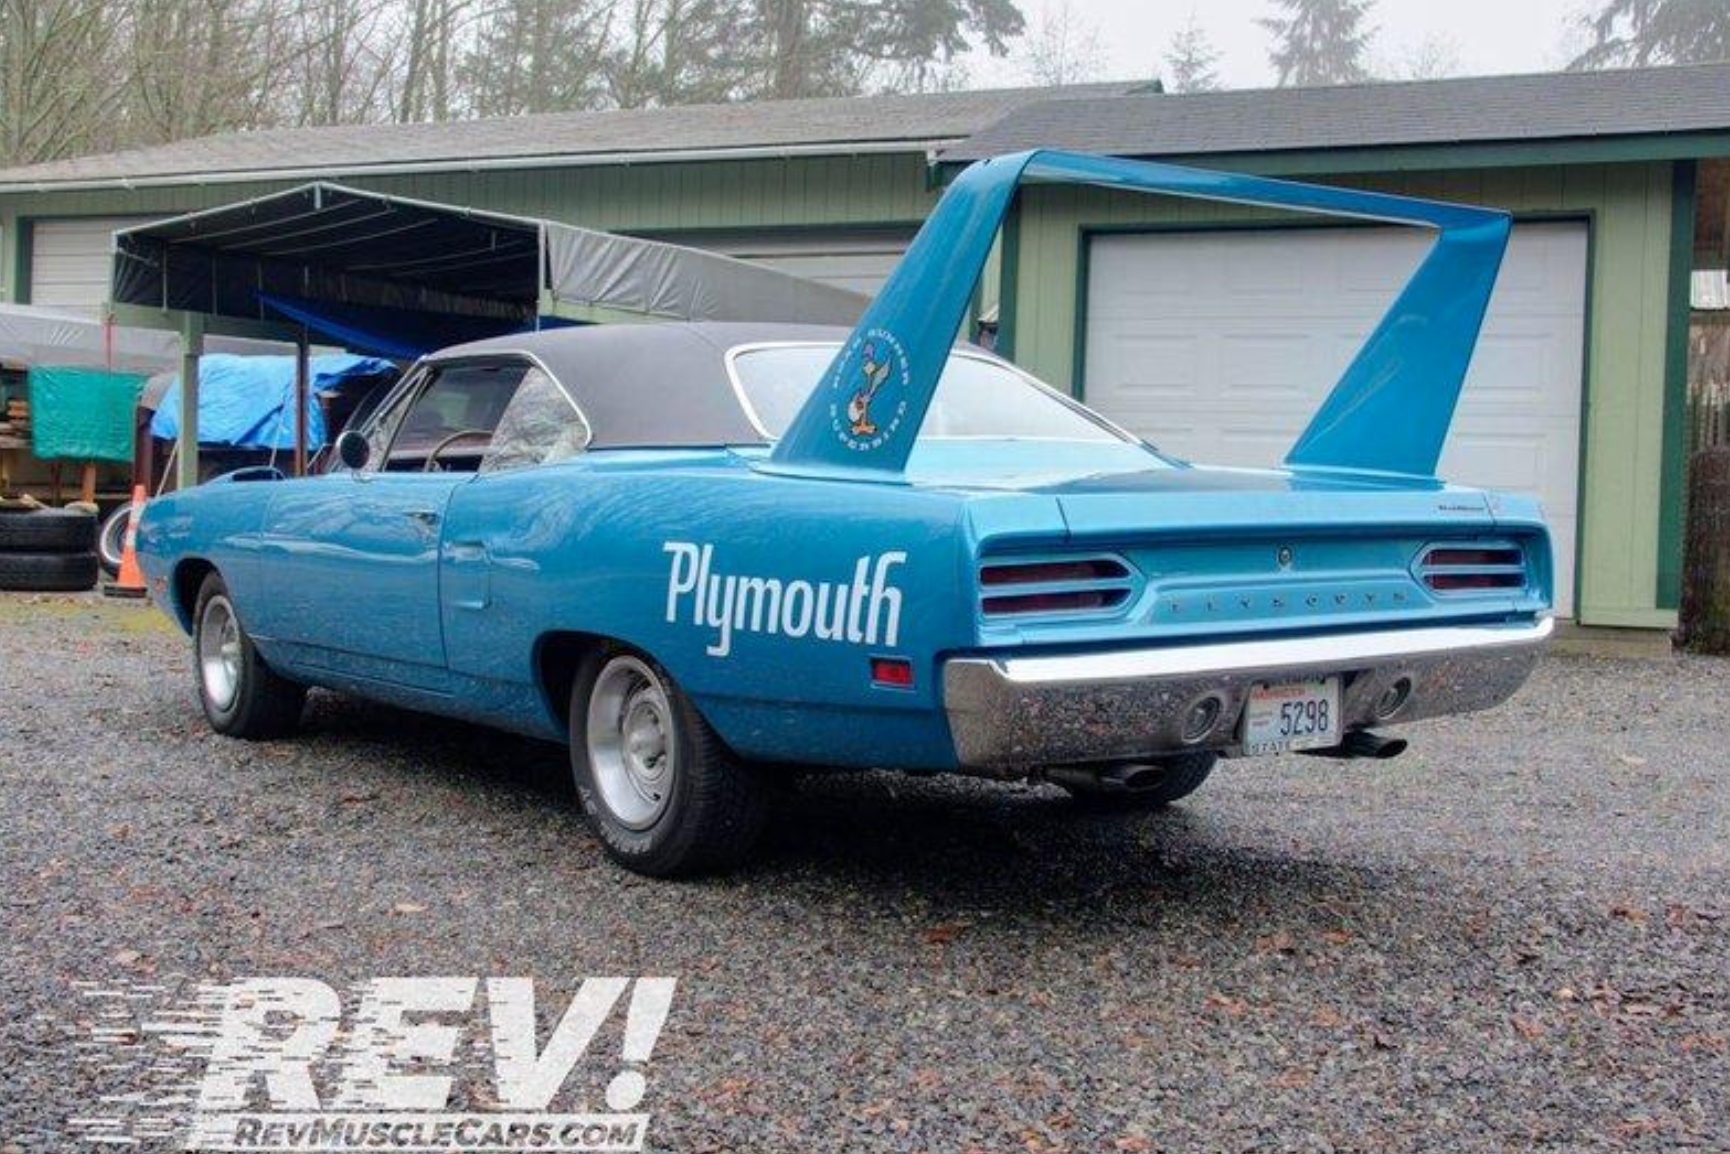 two-owner, restored 1970 plymouth superbird ready to offer thrills  motorious